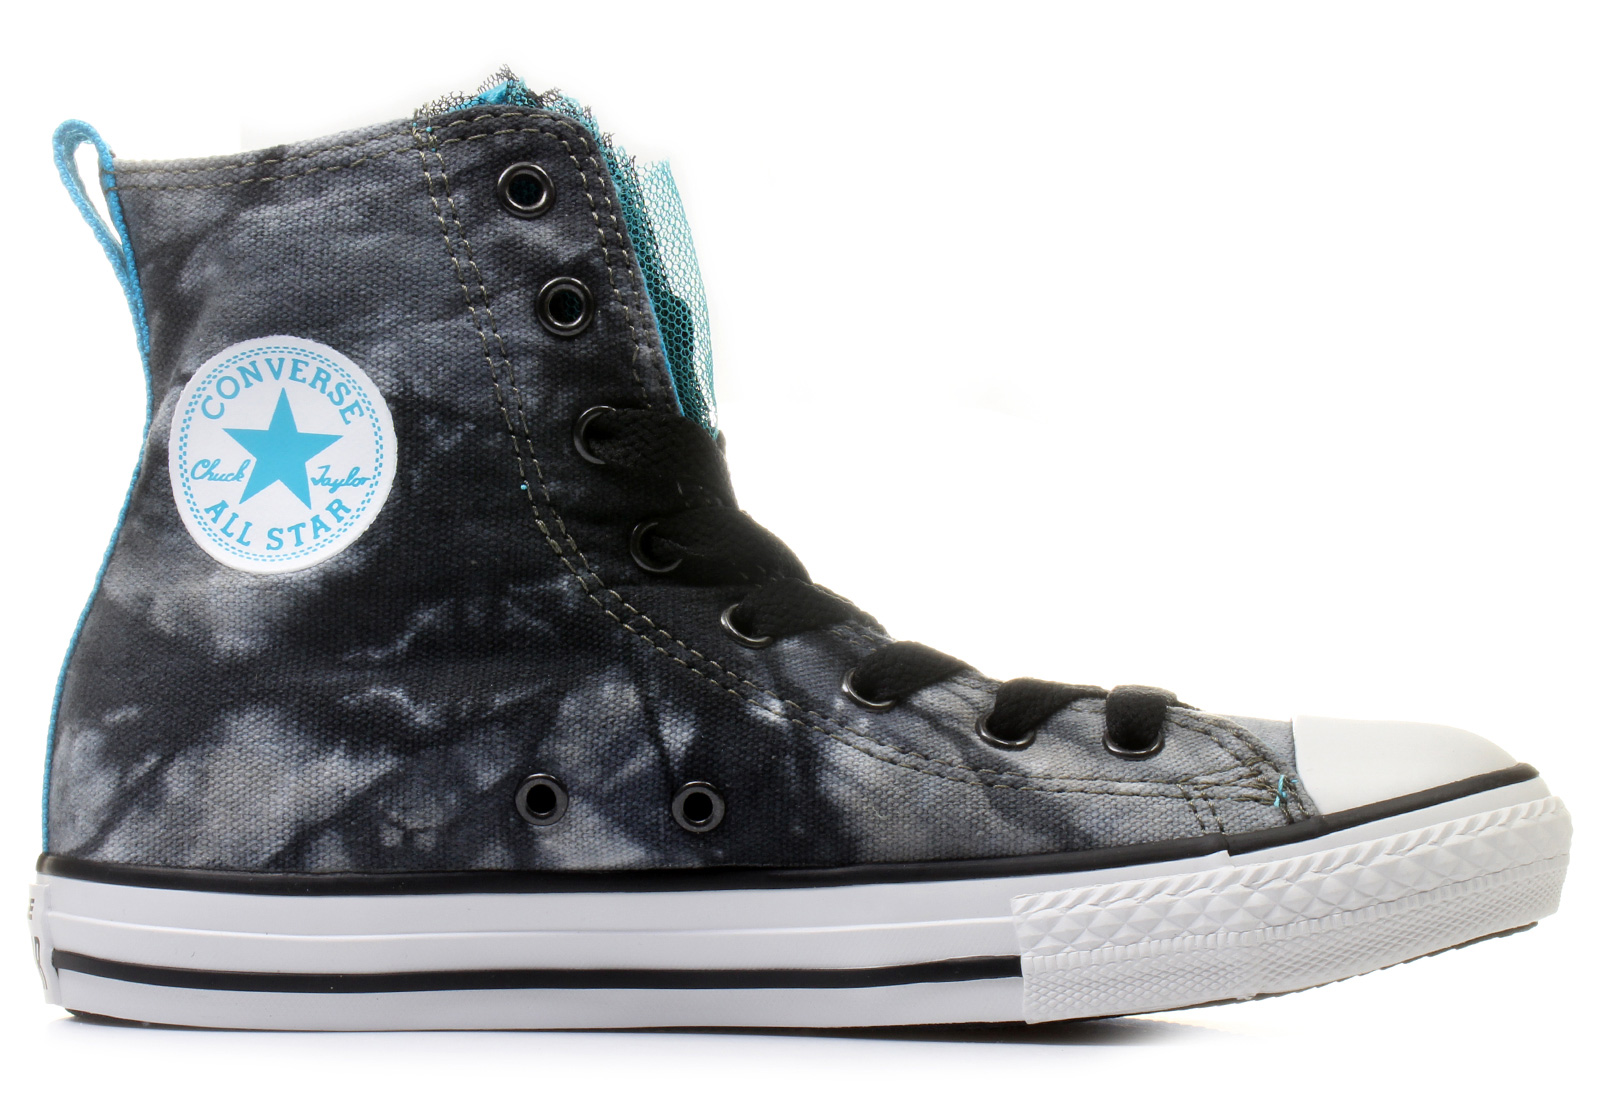 b16a6da8dc5415 Converse Tenisky - Chuck Taylor All Star Party Hi - 642817c ...